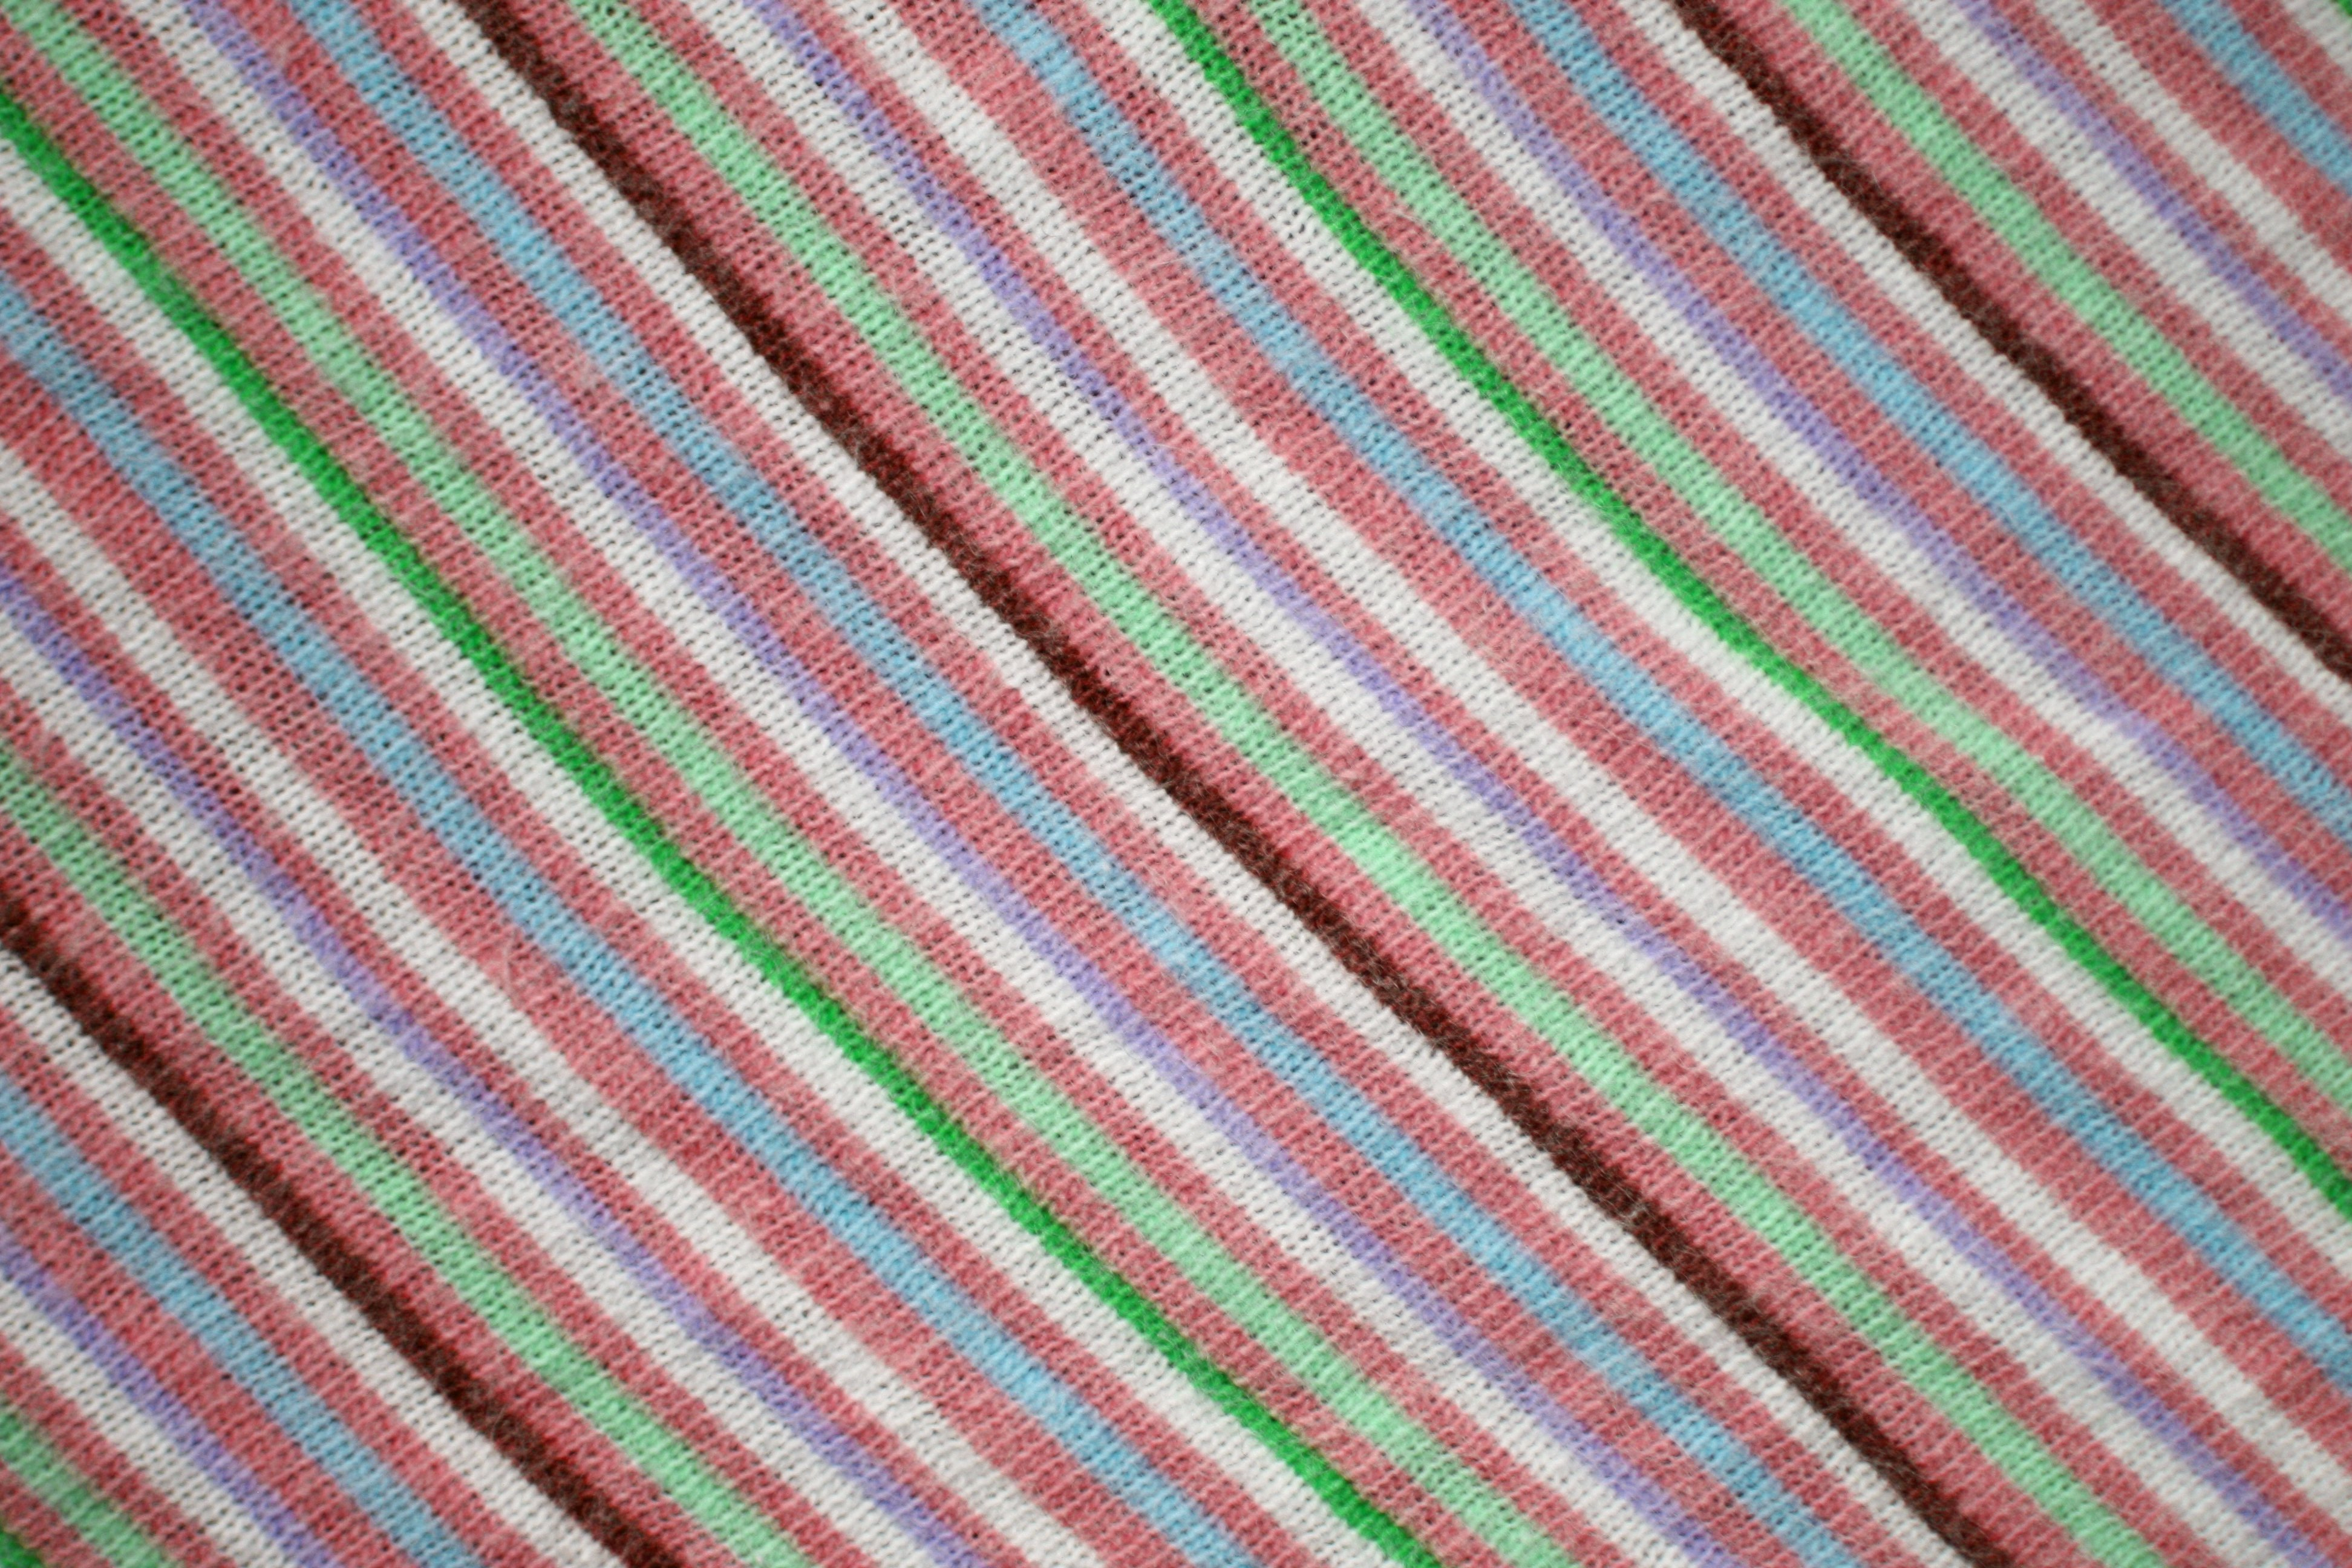 Diagonally Striped Knit Fabric Texture Salmon Blue And